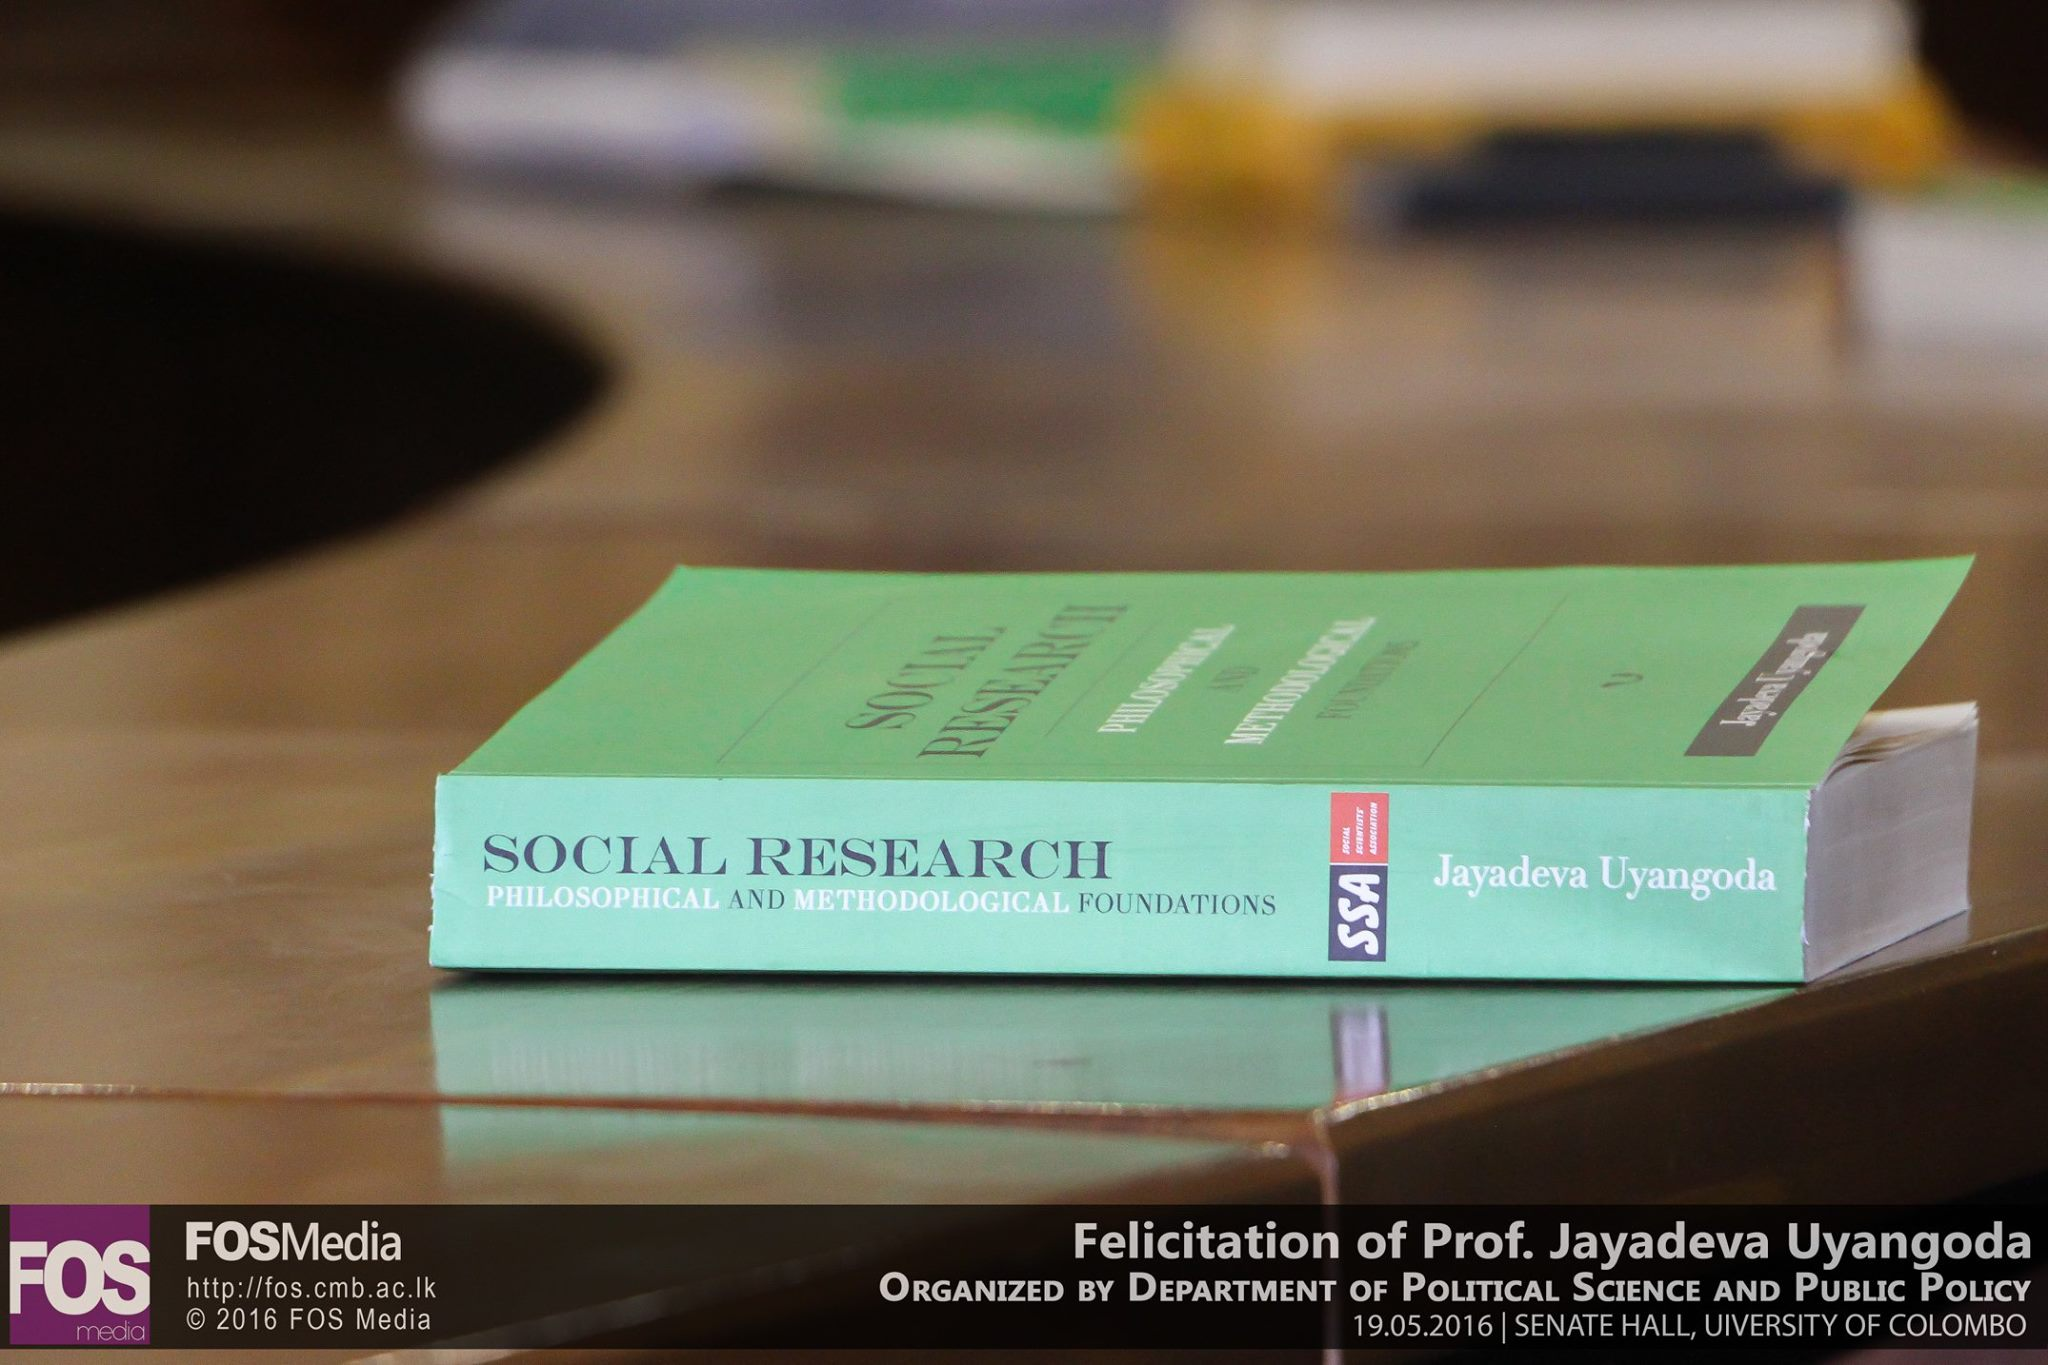 """The felicitation of Professor Jayadeva Uyangoda followed by a panel discussion on his latest publication """"Social Research: Philosophical and Methodological Foundations"""""""